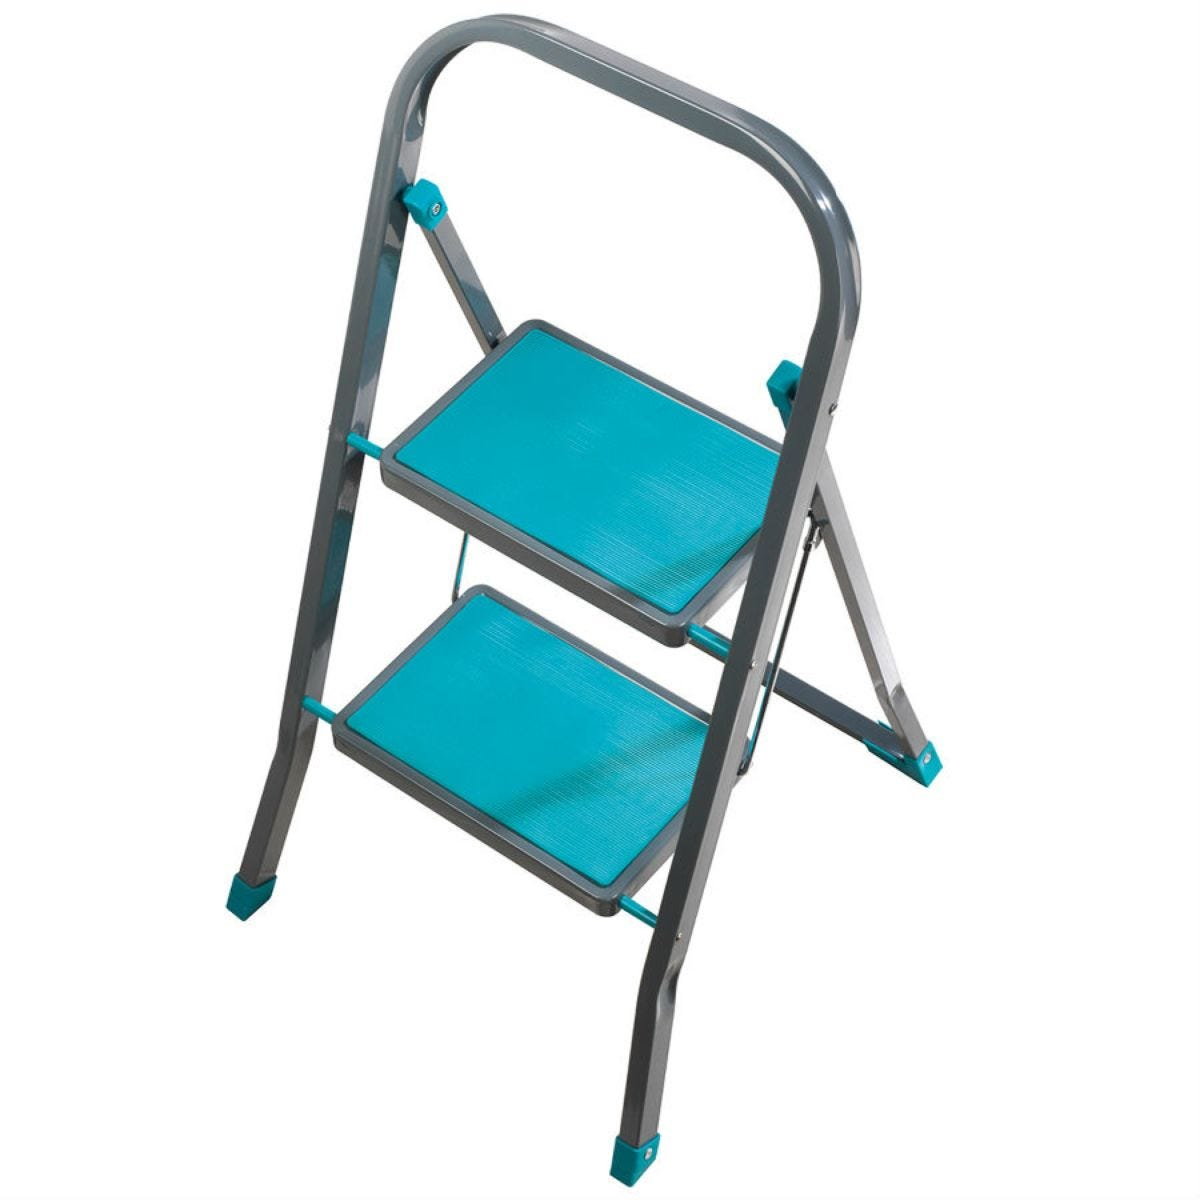 Beldray 2-Step Ladder - Turquoise